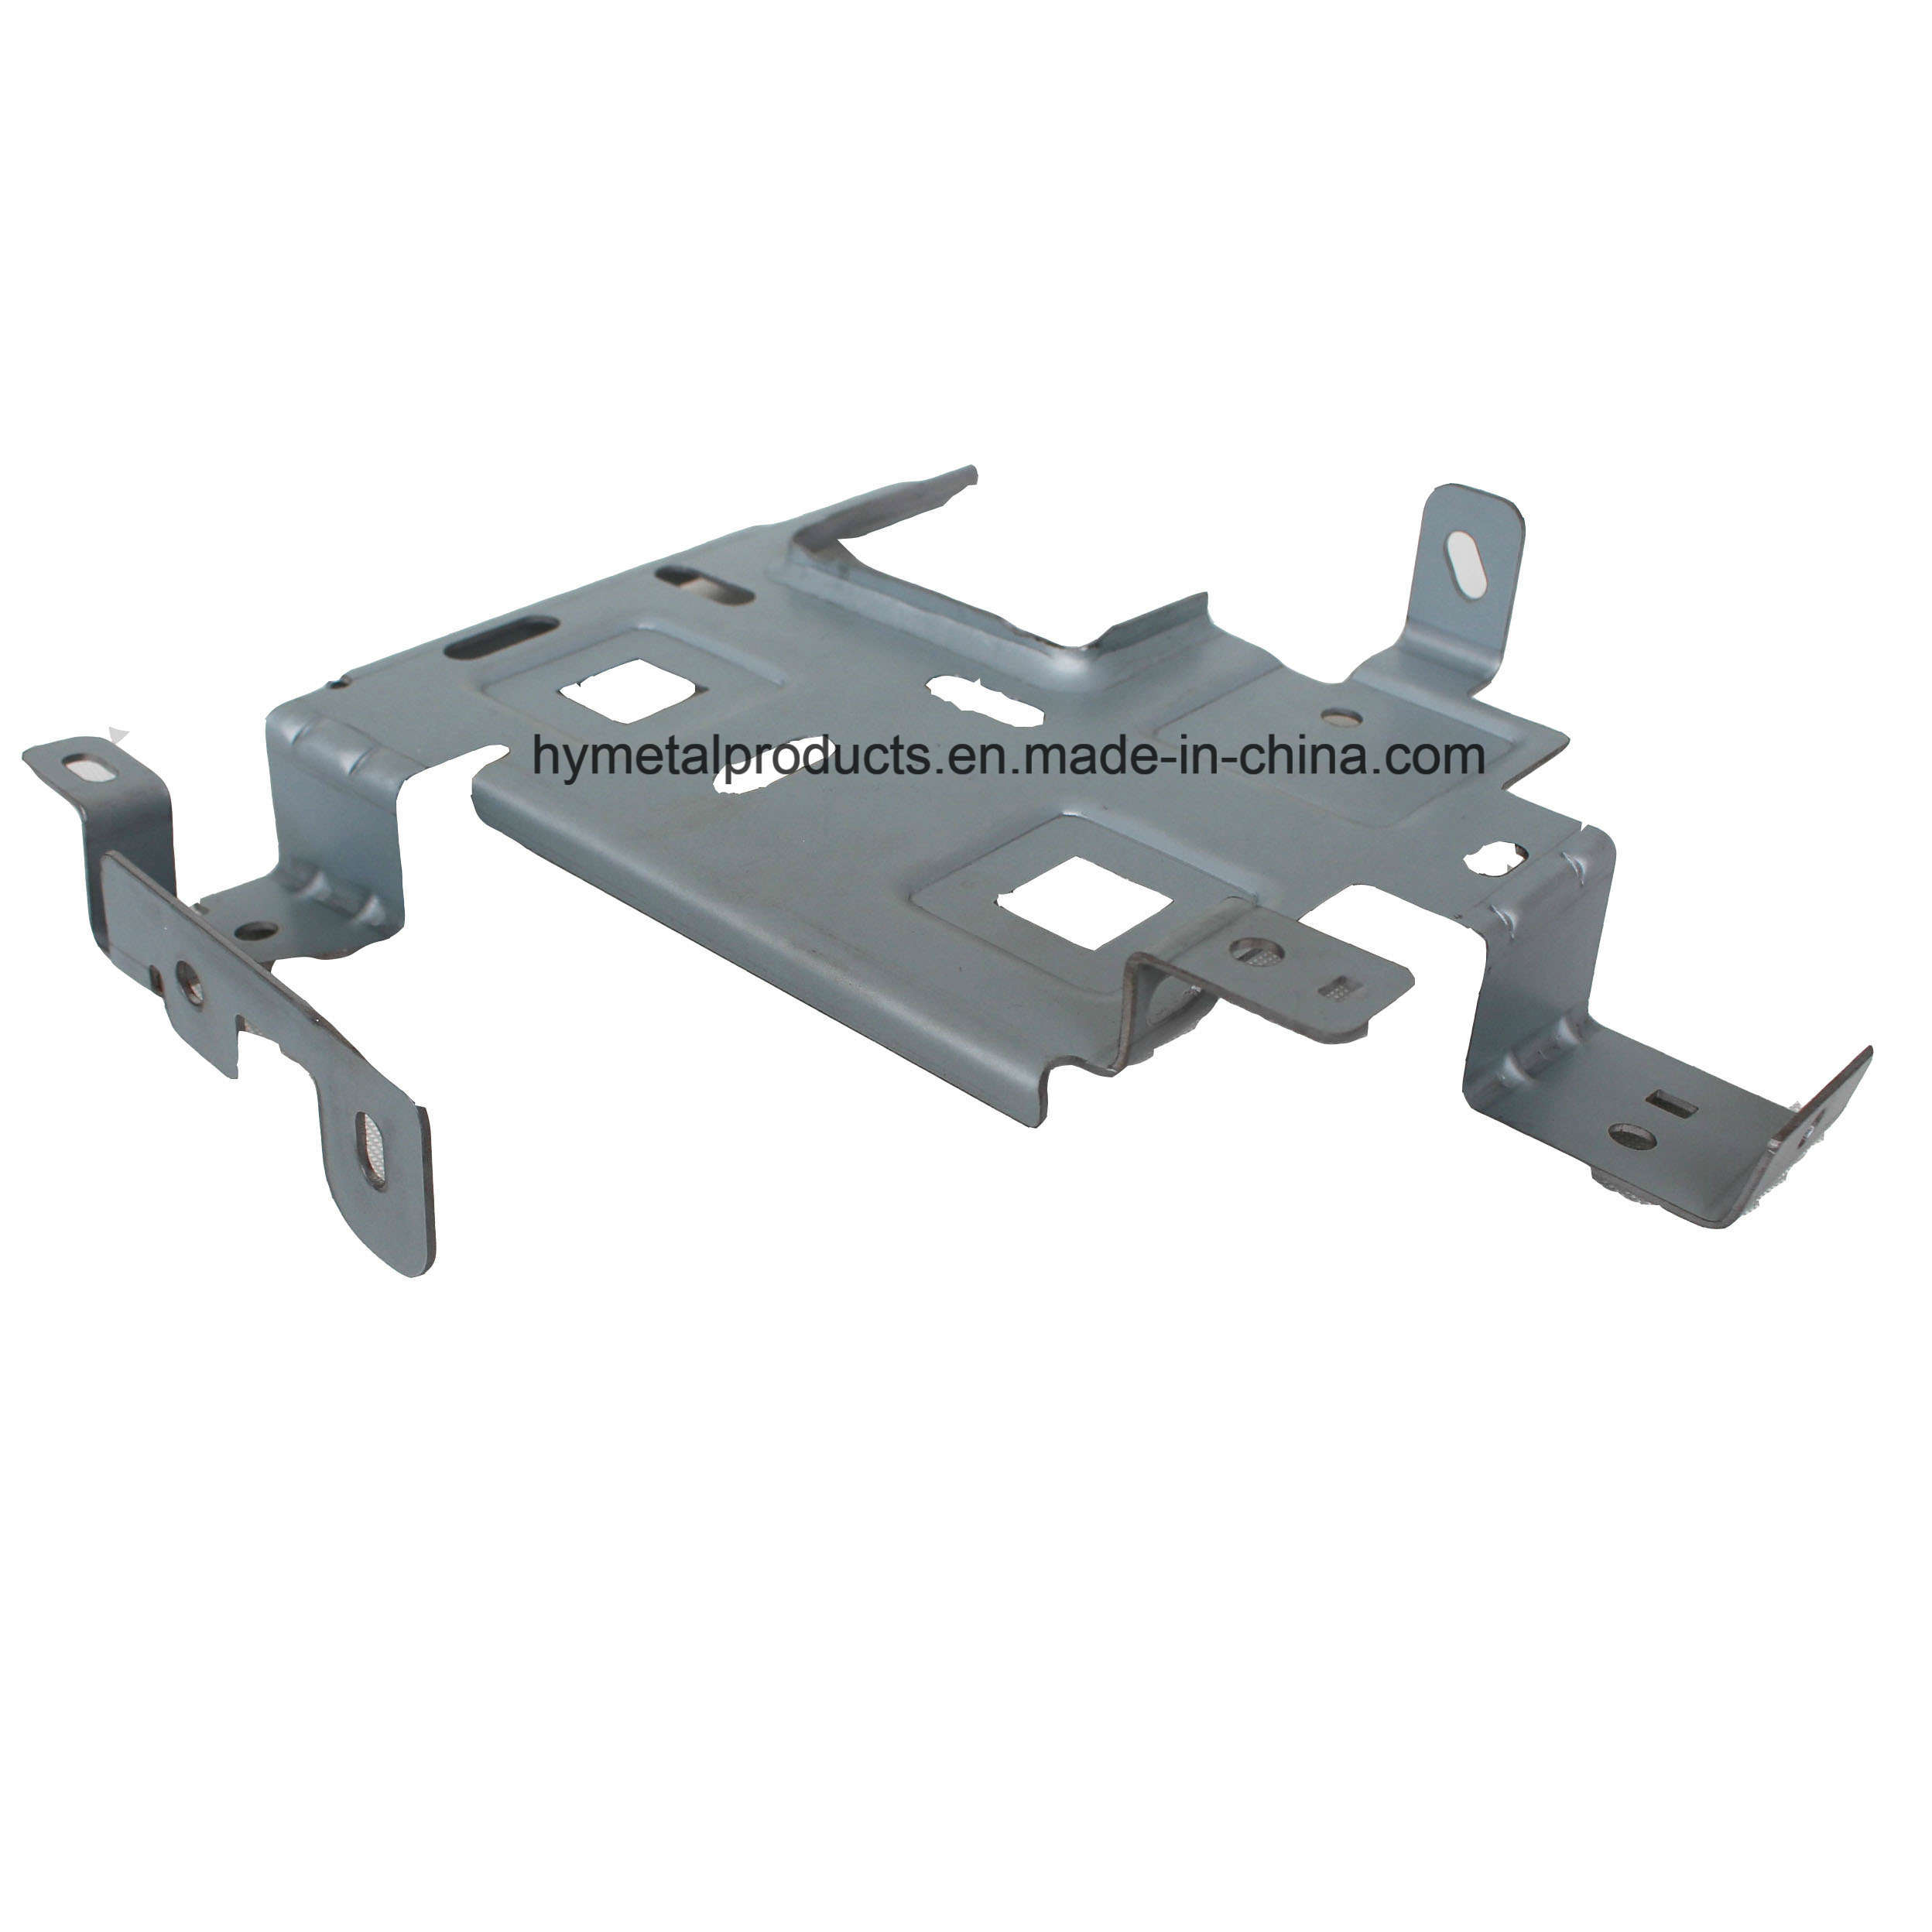 High Precision Customized Sheet Metal Parts OEM Manufacture